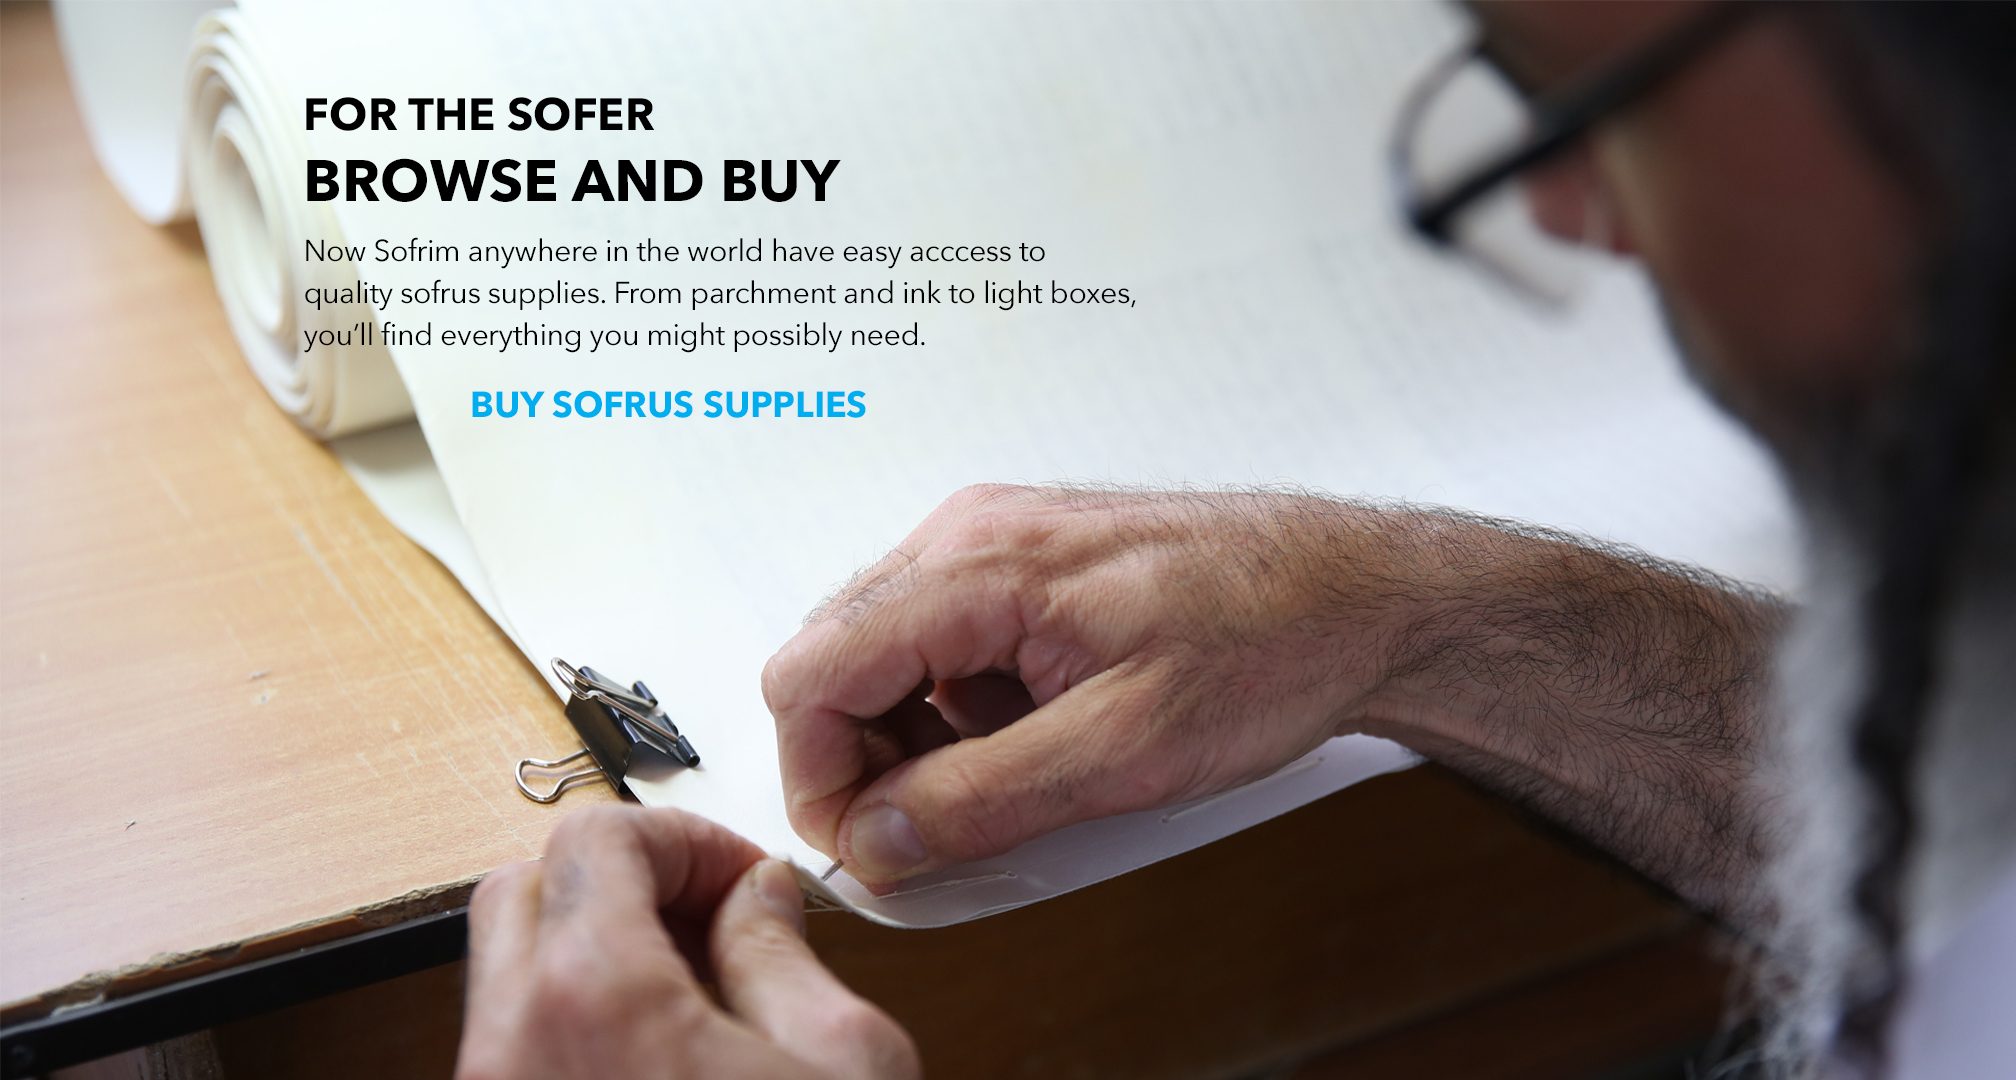 Browse and Buy. Now Sofrim anywhere in the world have easy access to quality sofrus supplies. From parchment to ink to light boxes, you'll find everything you might possibly need.